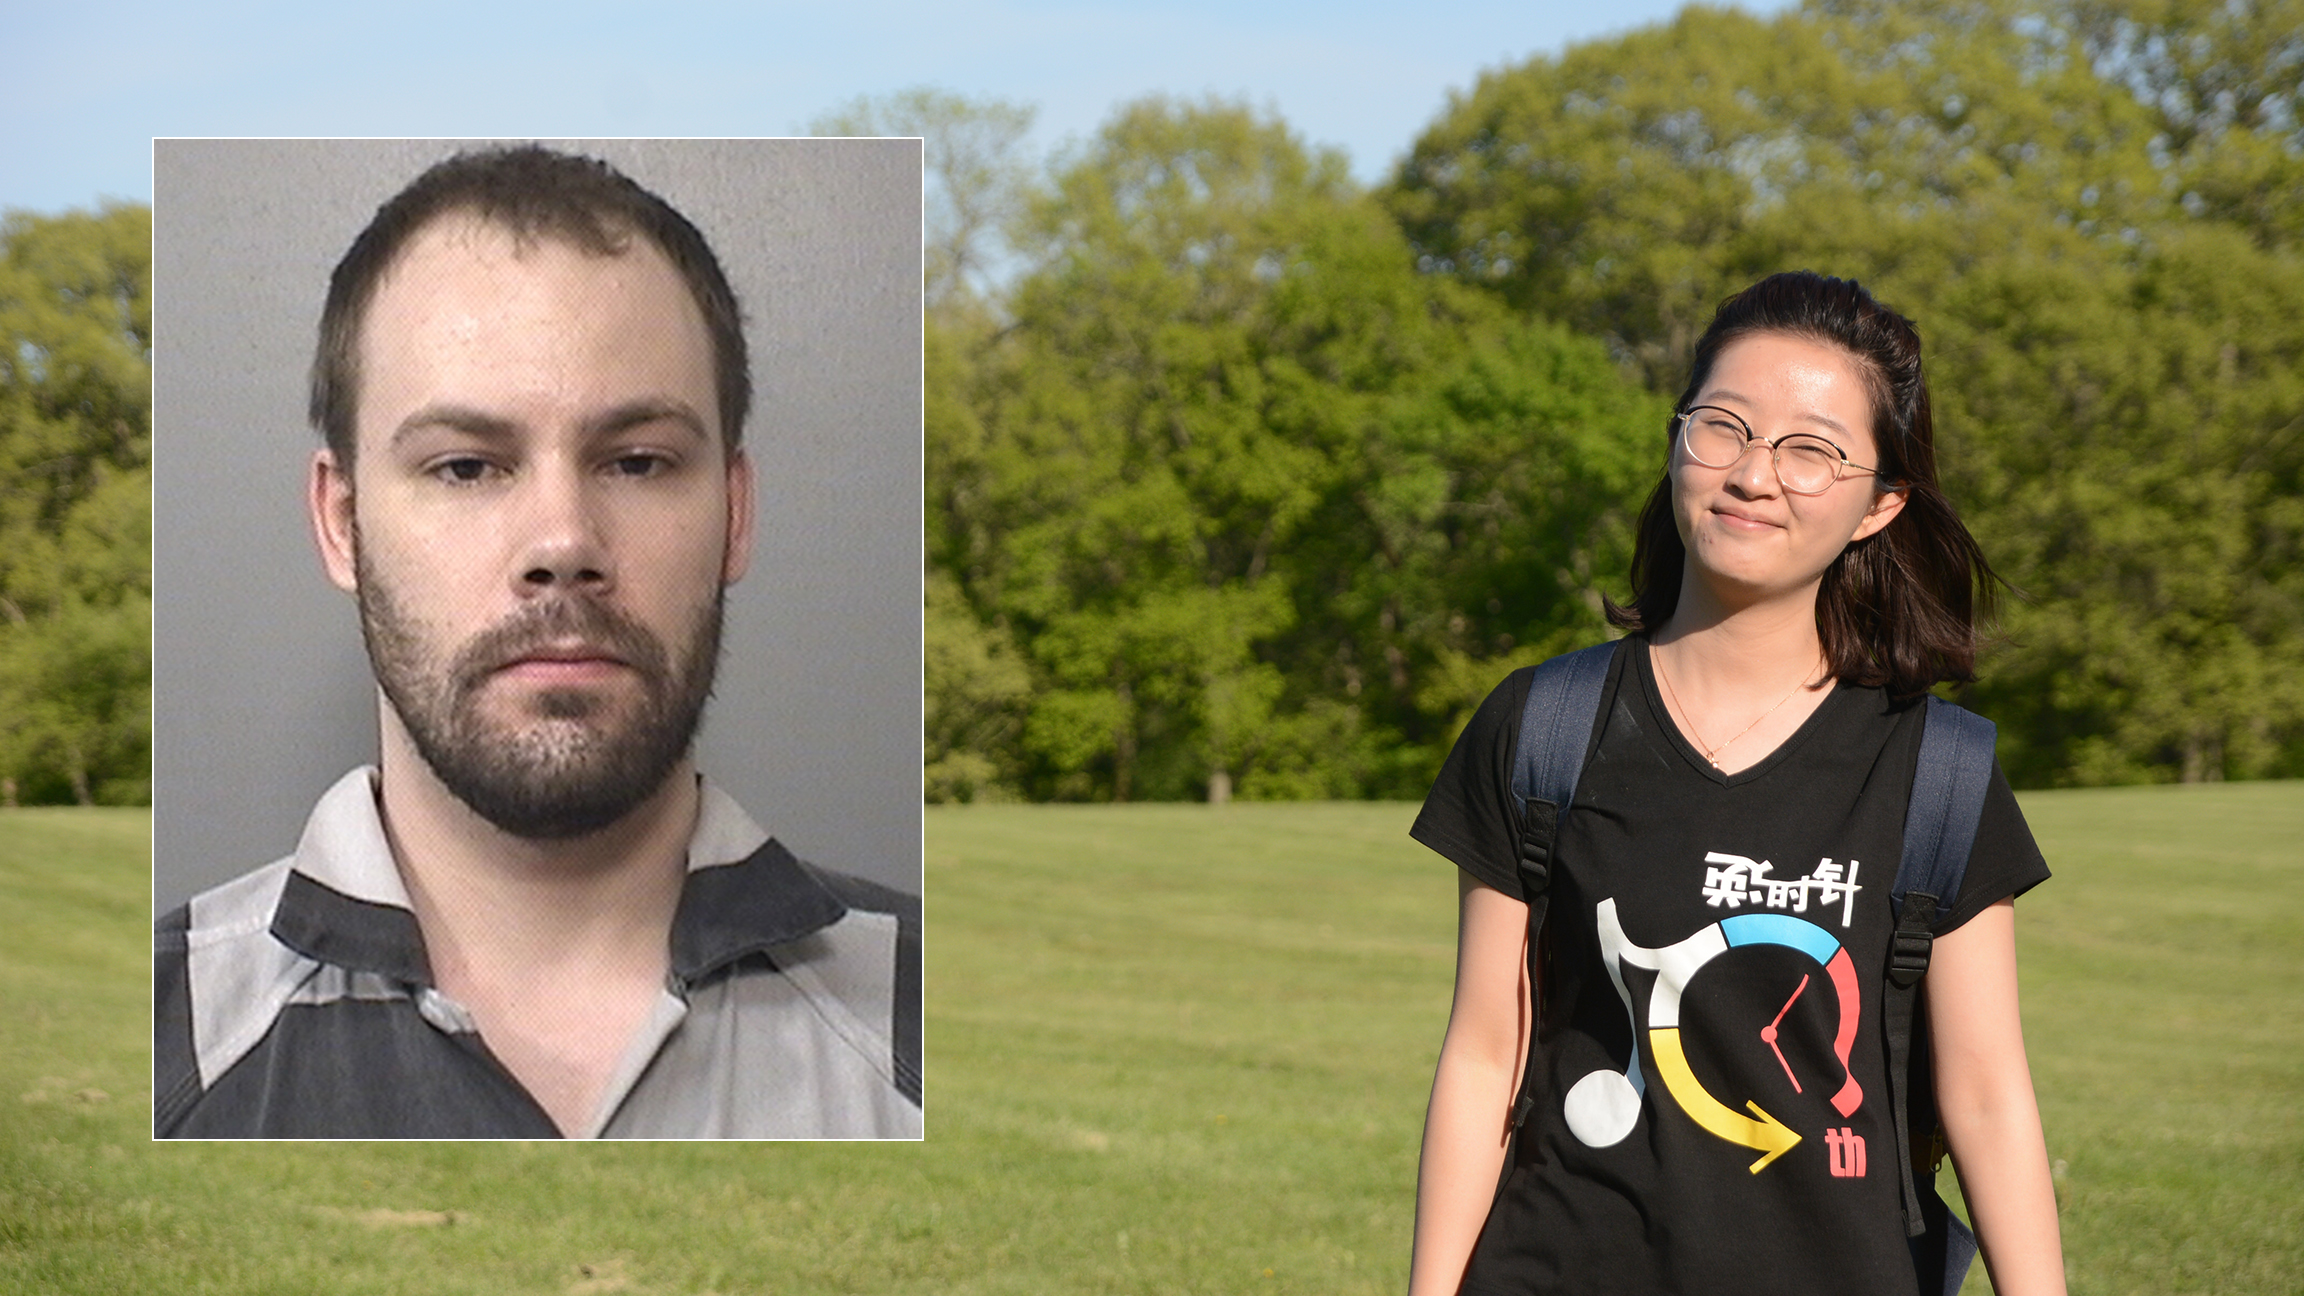 Informant provides new evidence in Zhang Yingying murder case